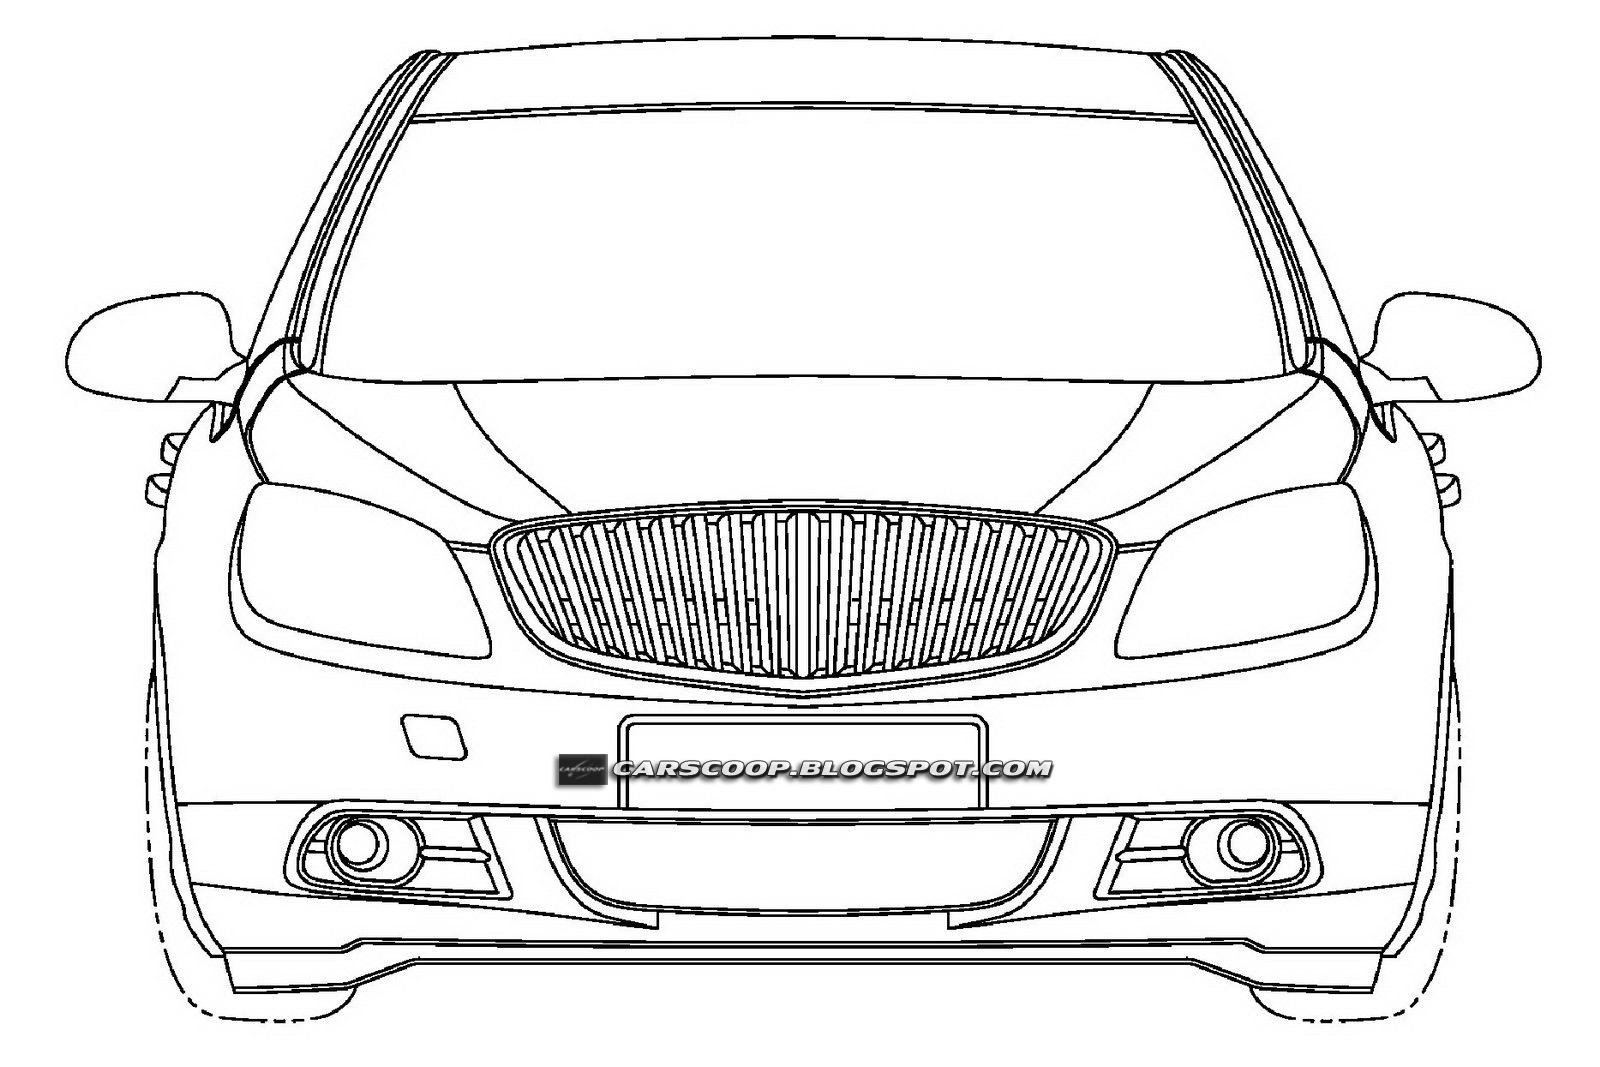 The Car U S Patent Drawings Of Buick Excelle Sedan